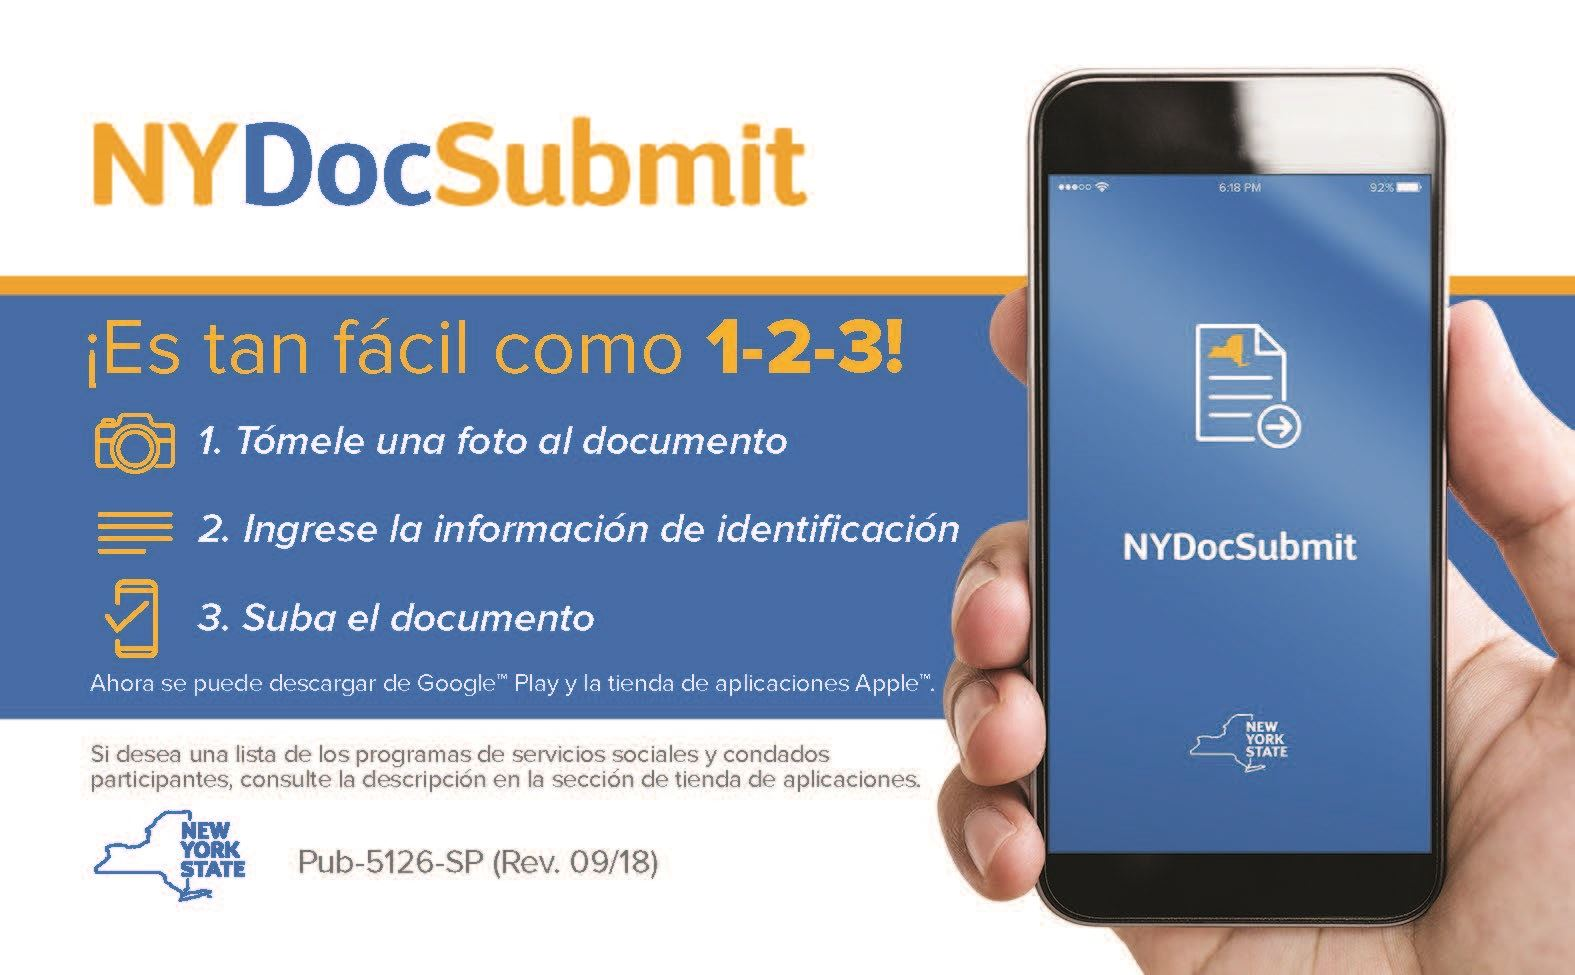 NYDocSubmit